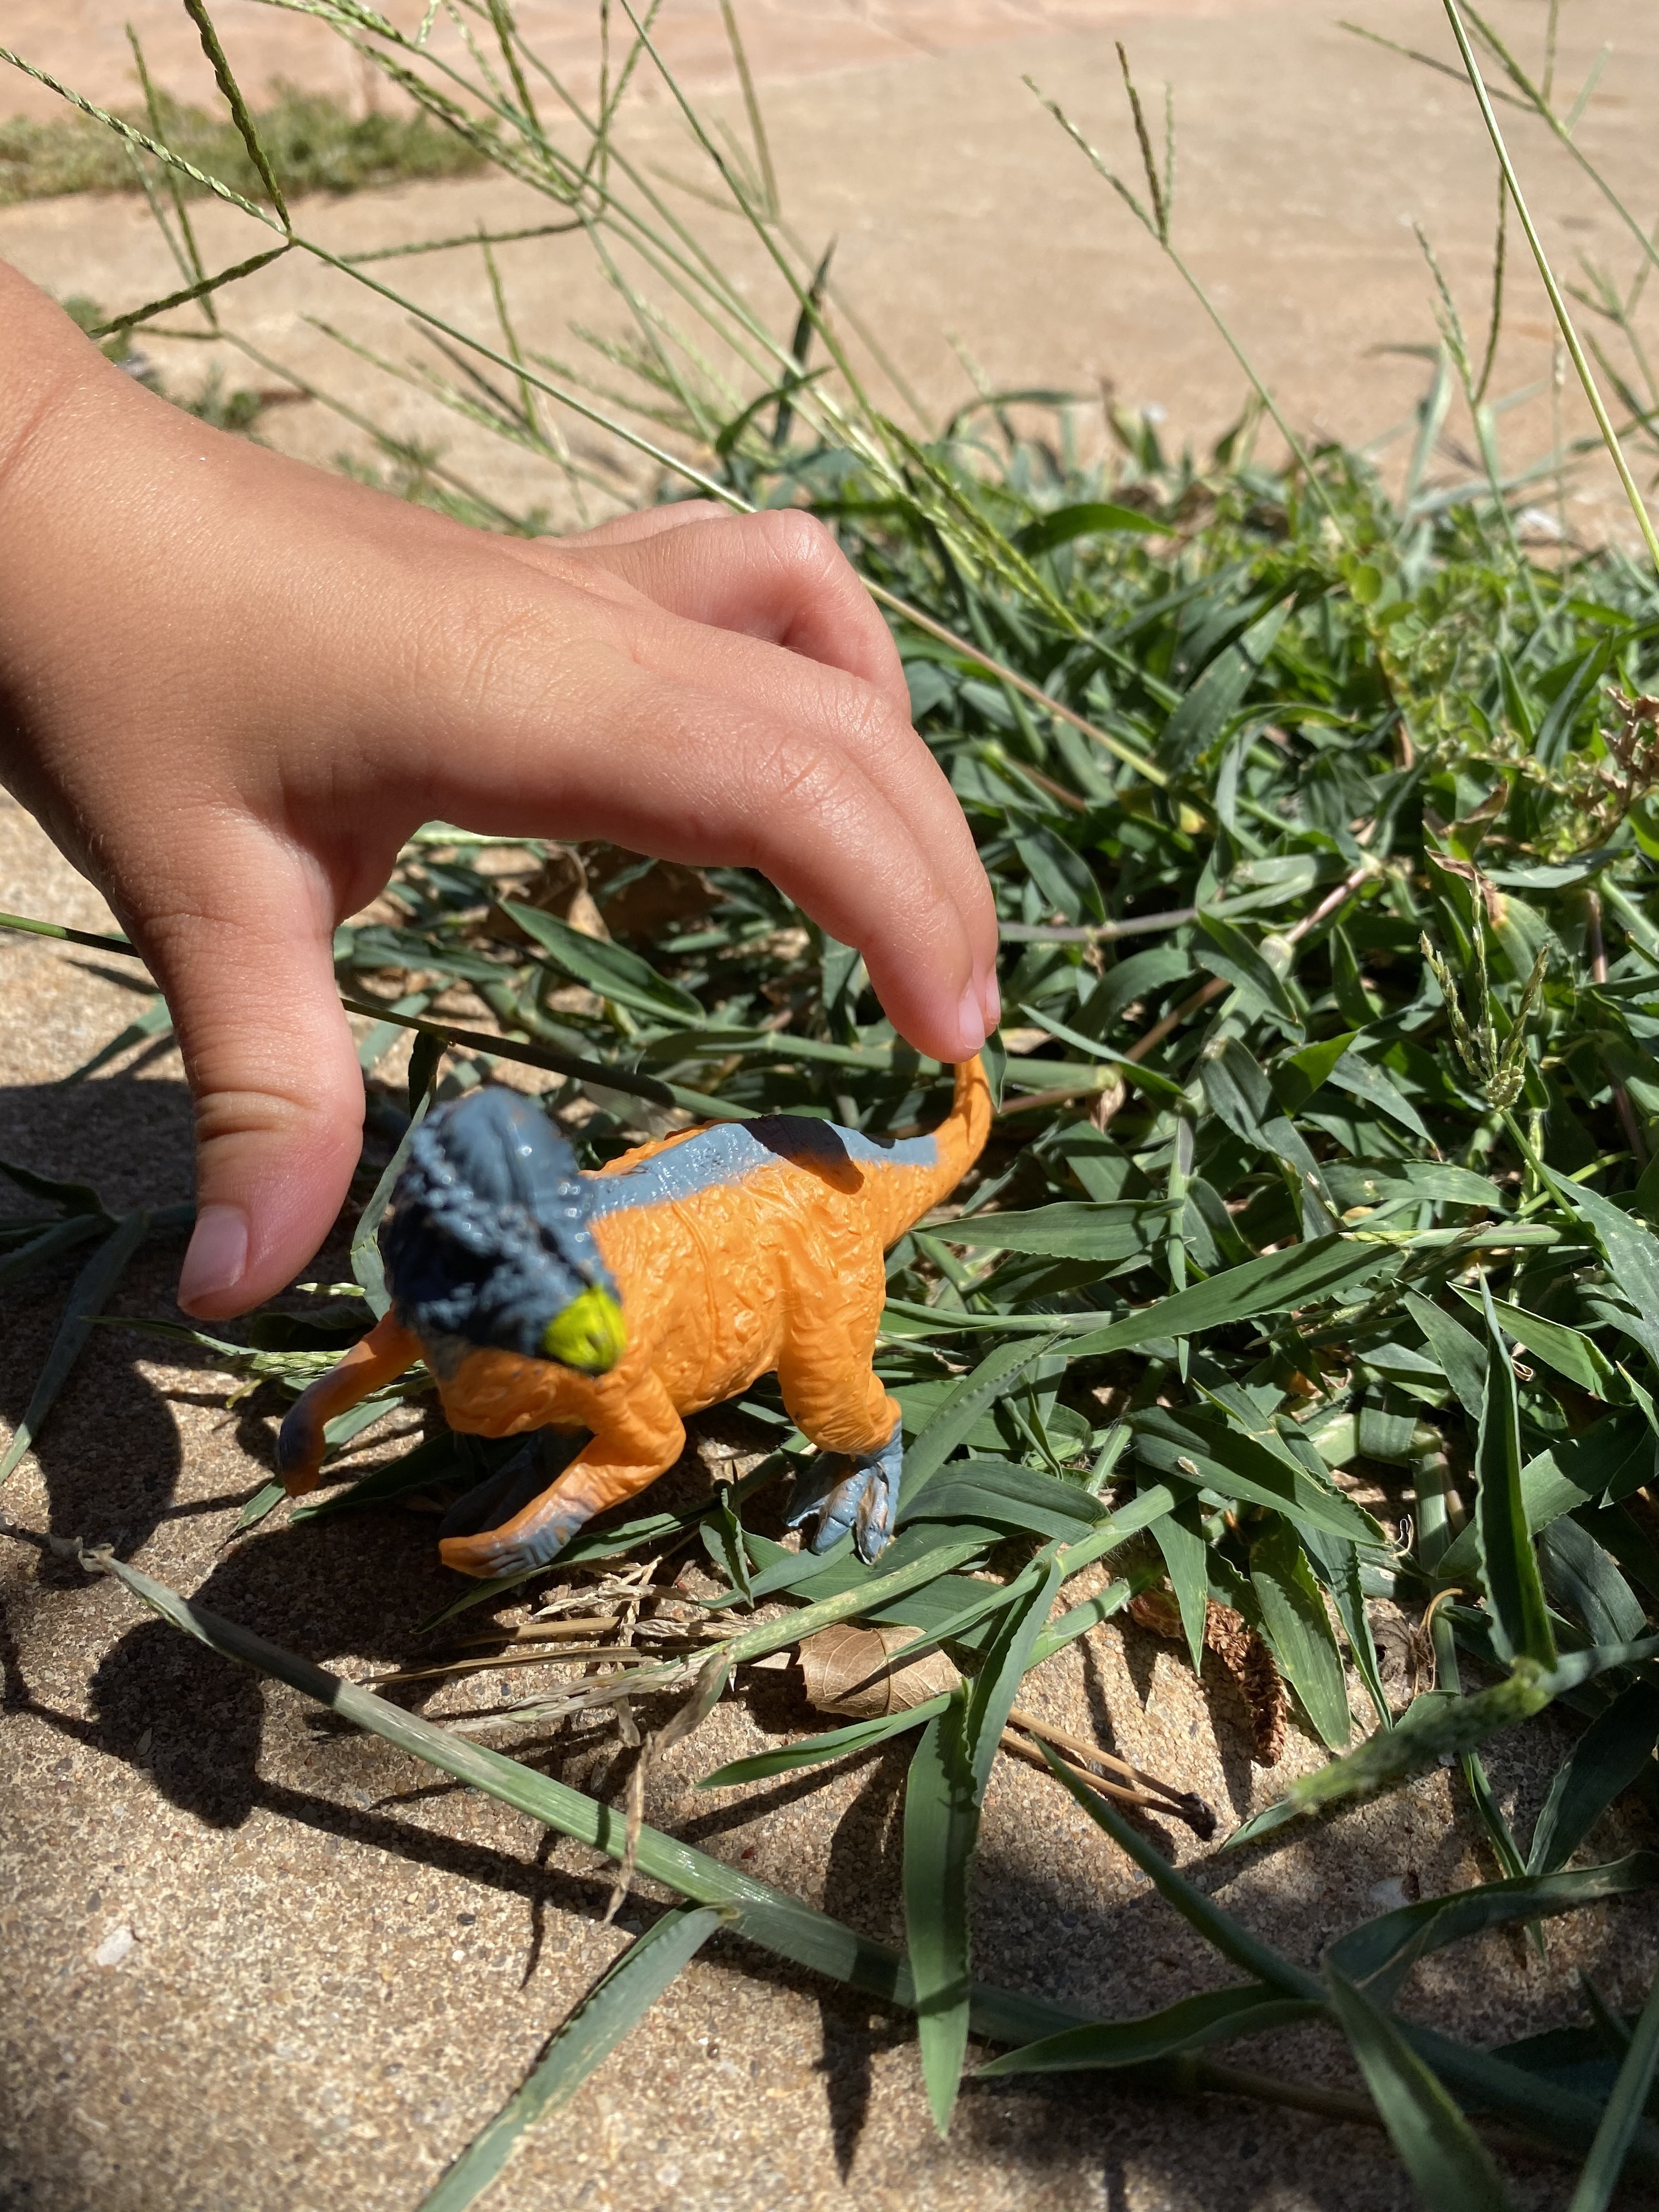 A hand stages a small plastic dinosaur in the grass